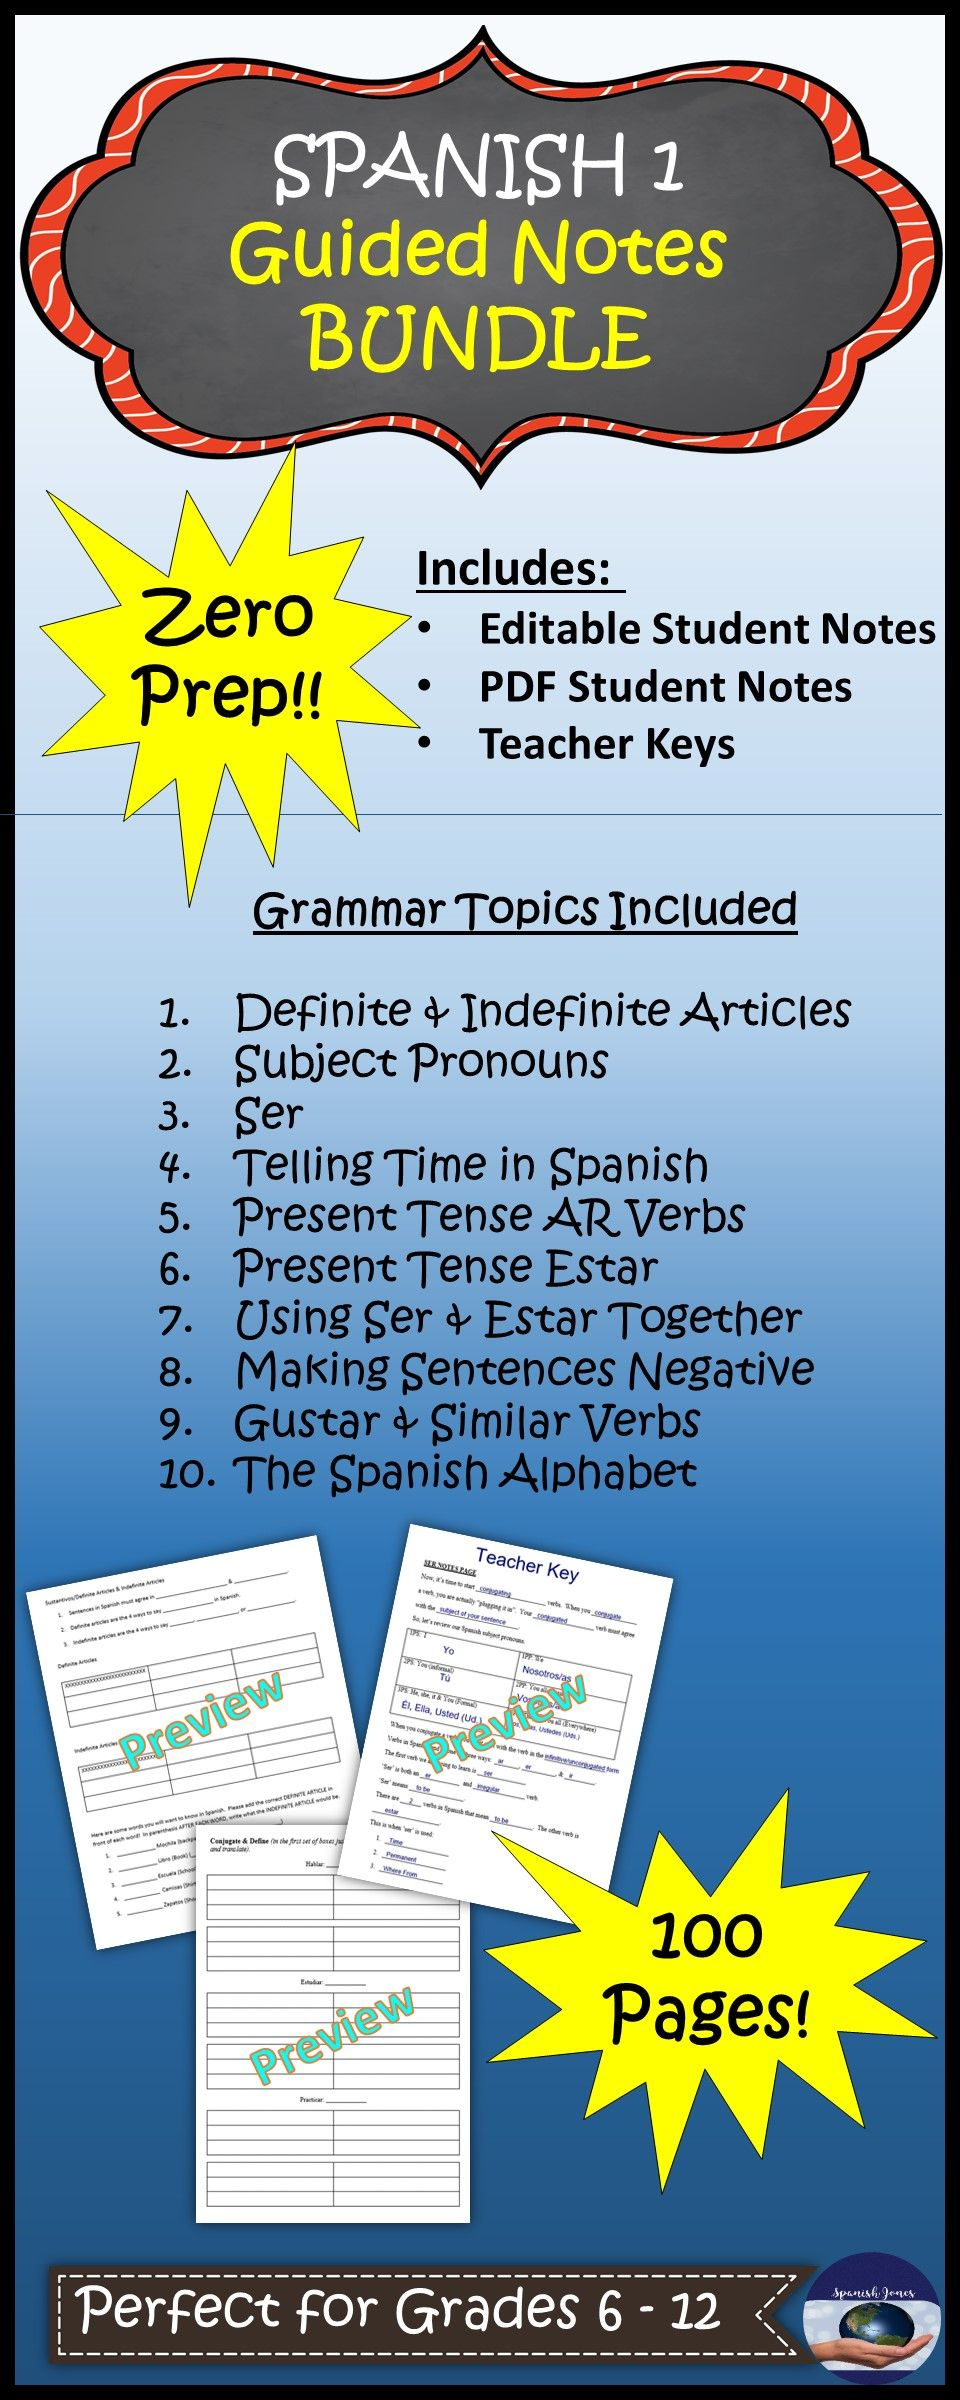 Spanish 1 Guided Notes Bundle with Keys | Education